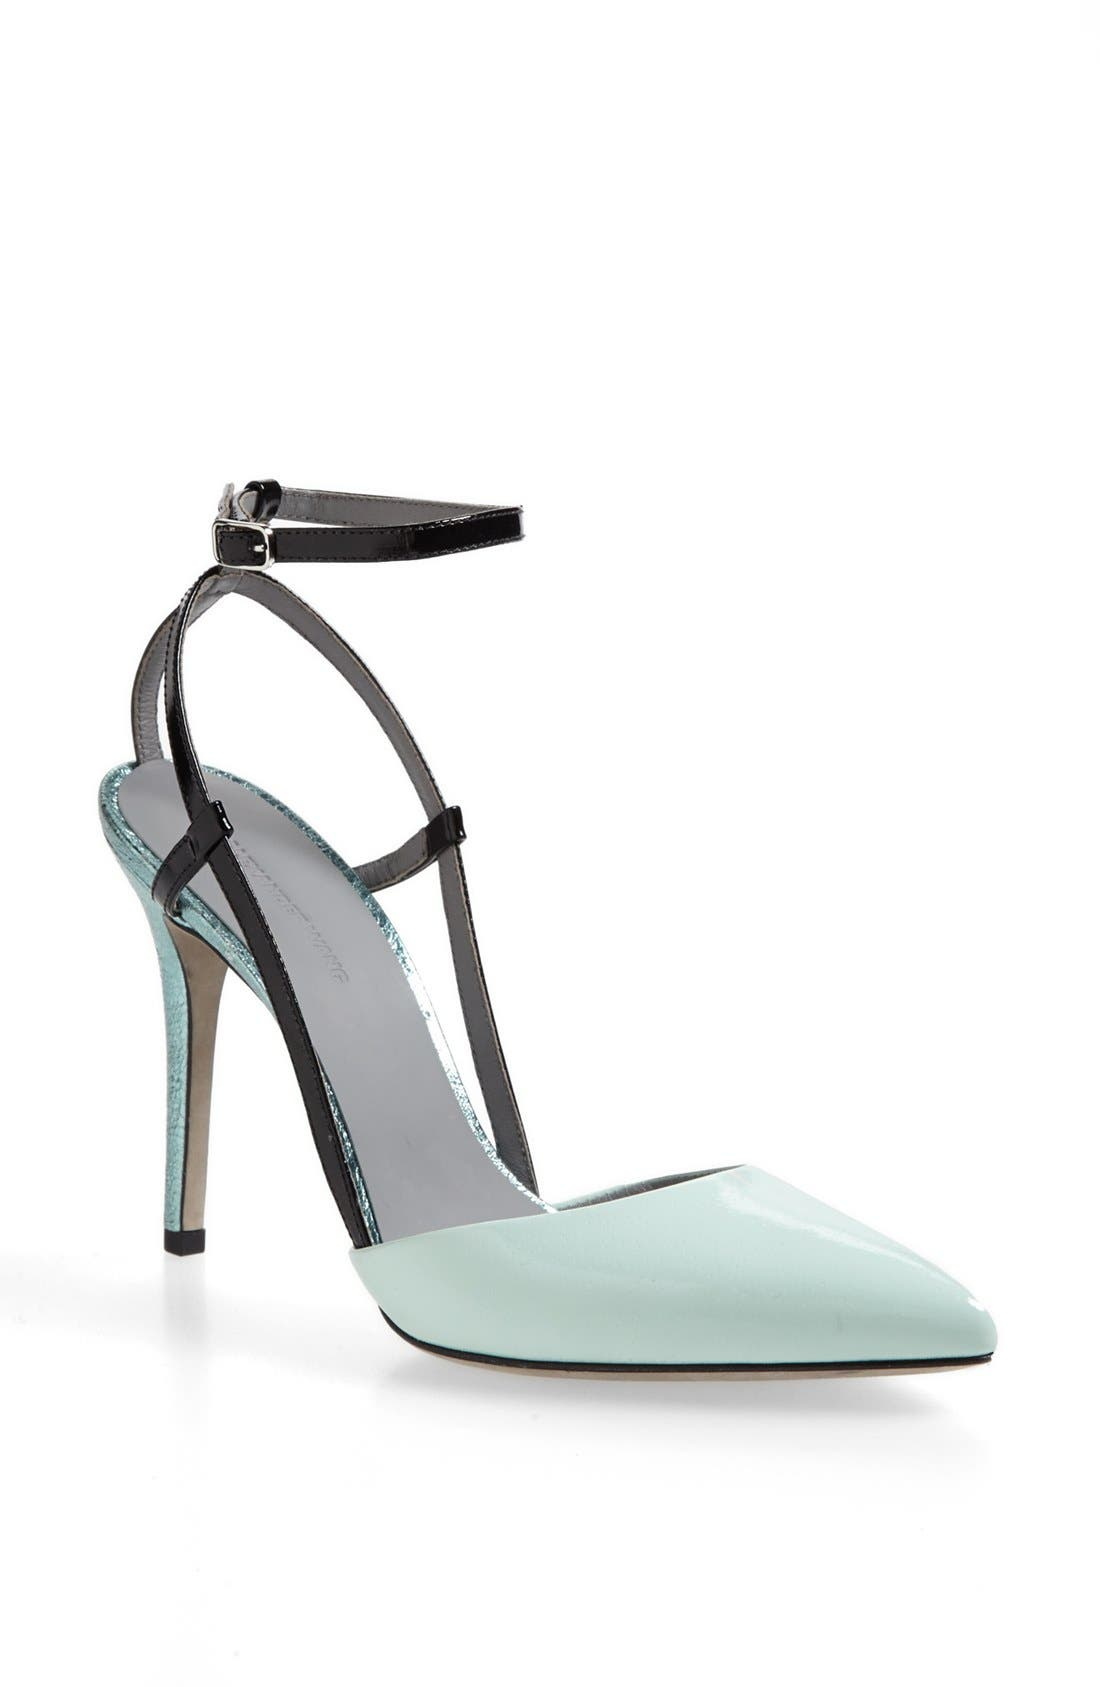 Alternate Image 1 Selected - Alexander Wang 'Jodie' Ankle Strap Calfskin Leather Pump